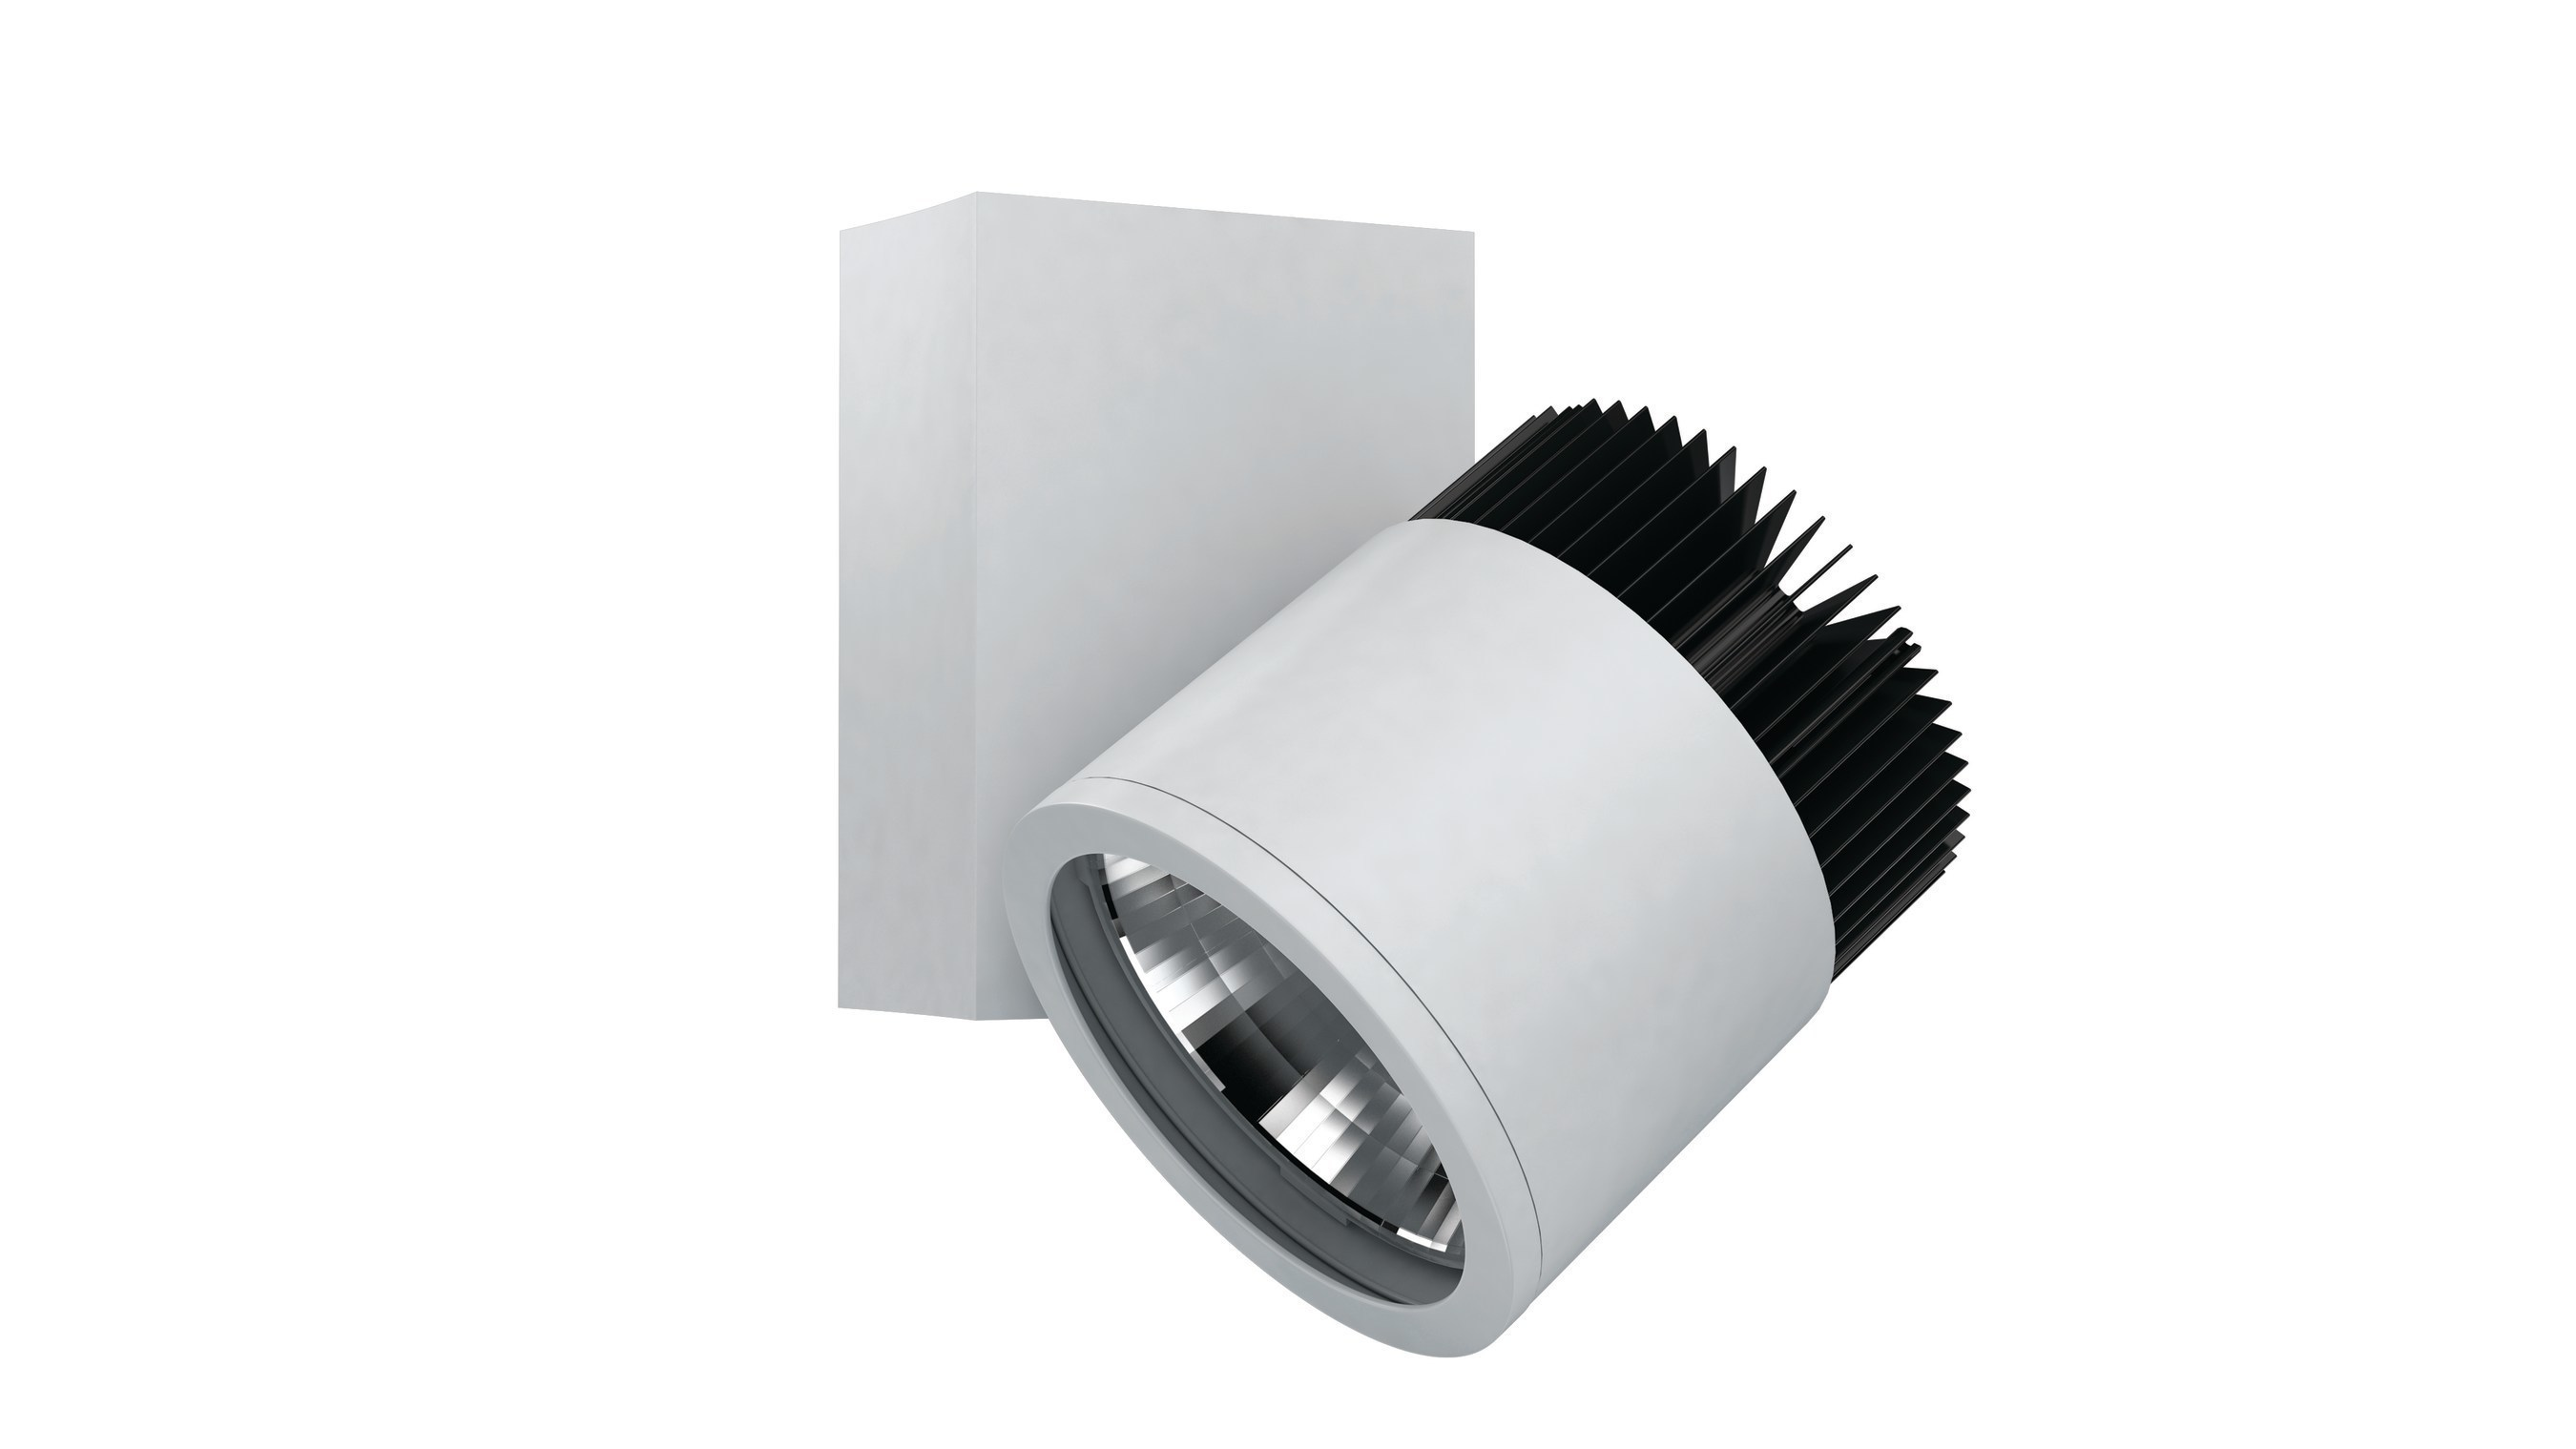 Amerlux Cylindrix Iv Led Accent Offers Extra Power That Helps People See Products Like Never Before